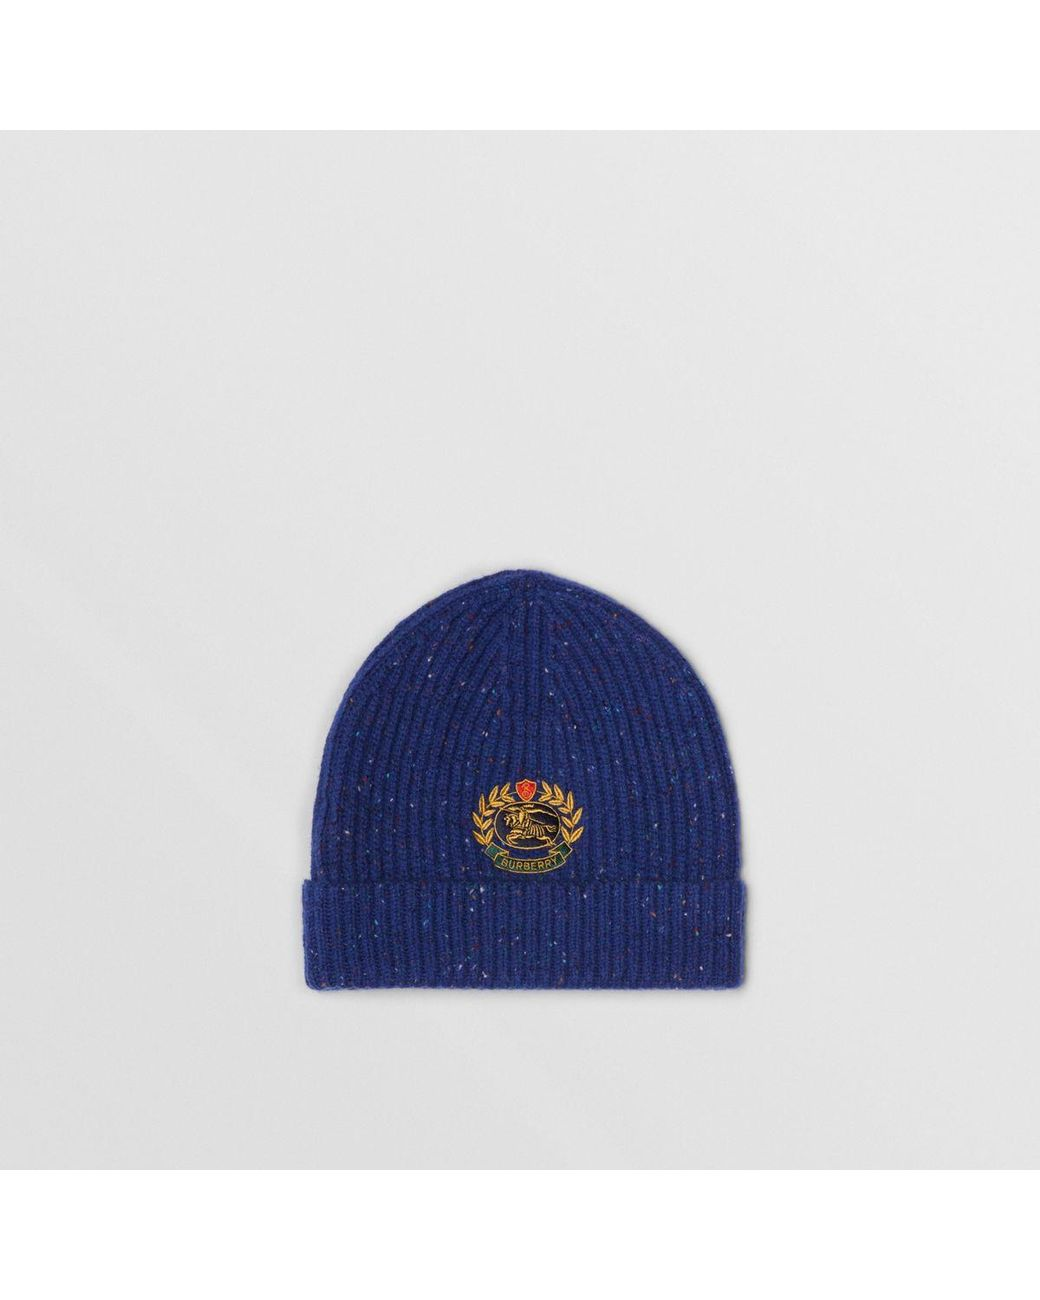 92f23423518 Burberry Embroidered Archive Logo Wool Blend Beanie in Blue - Lyst